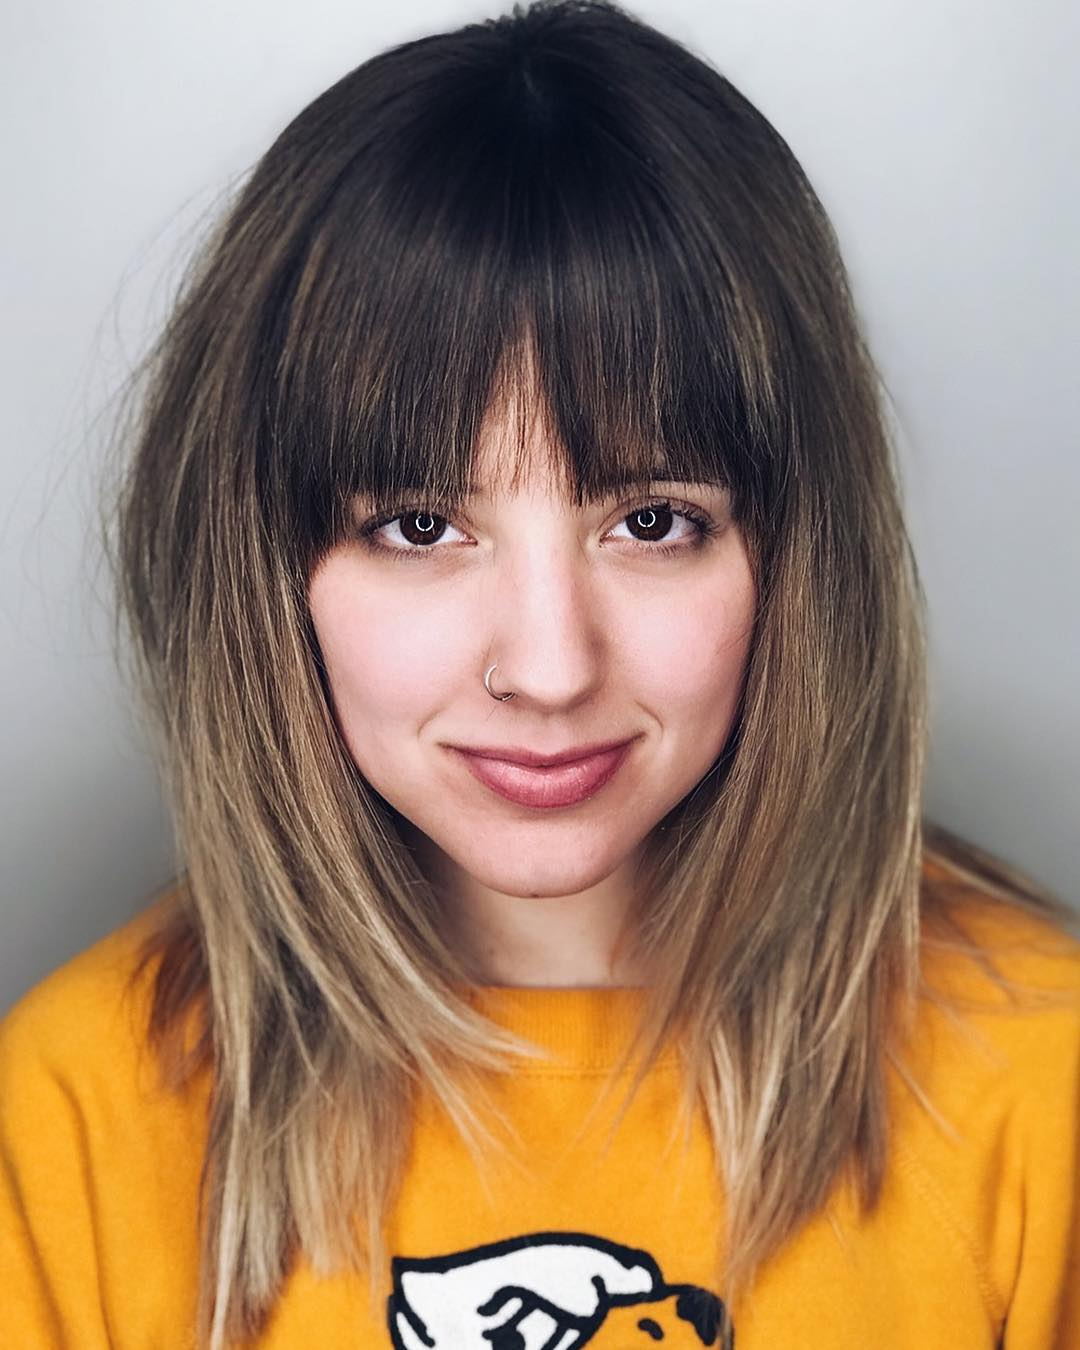 Mid-Length Textured Haircut with Bangs